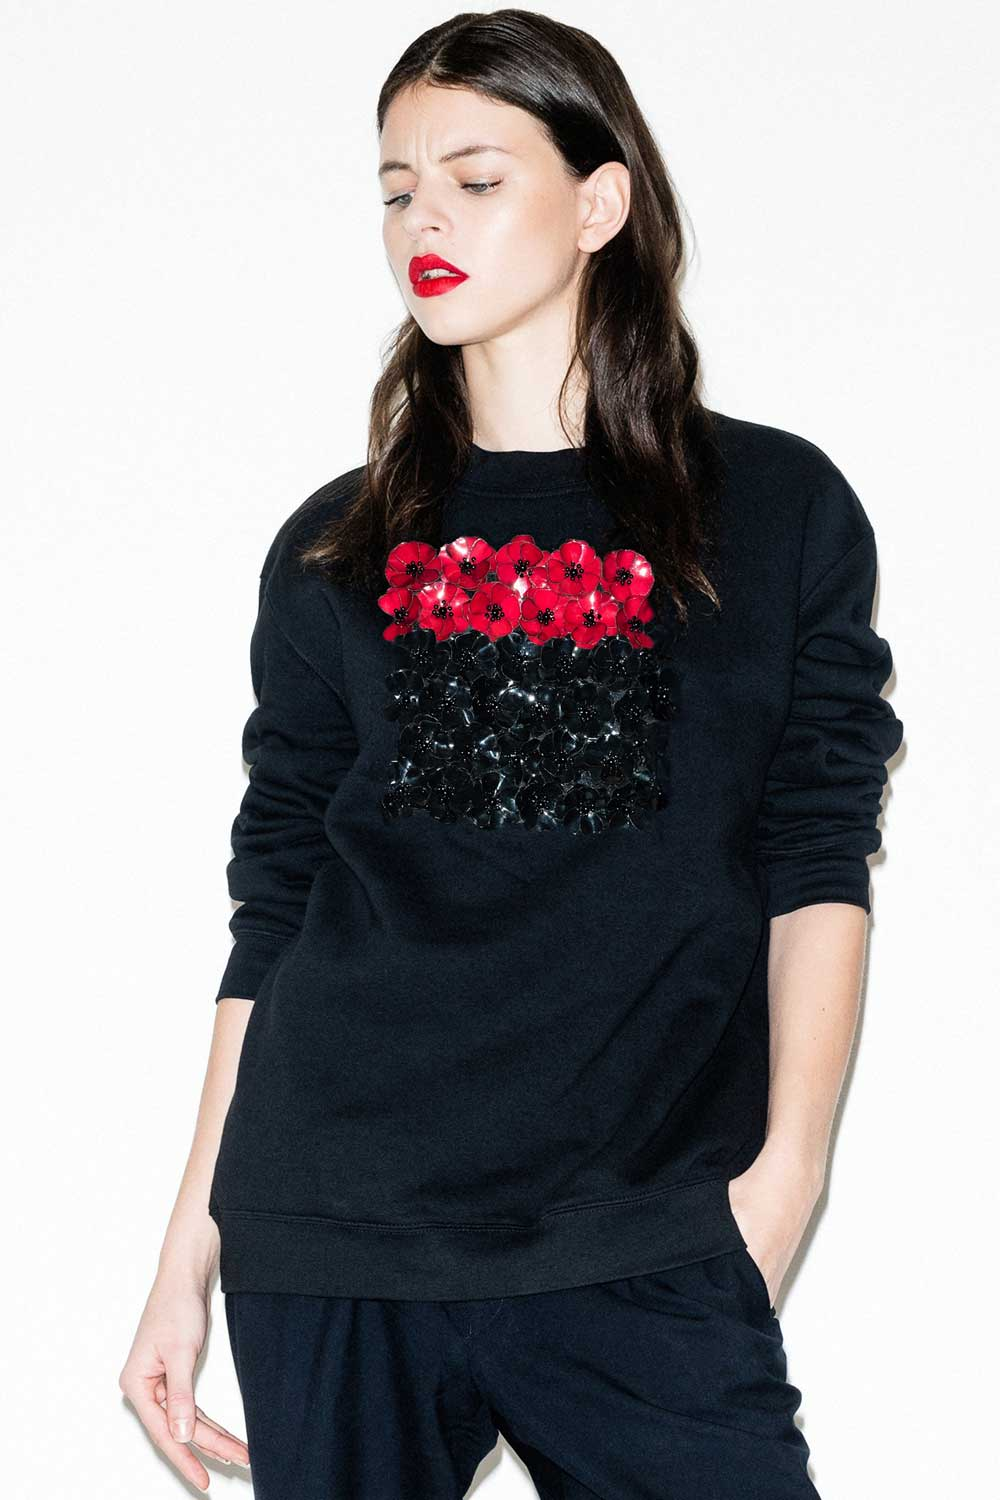 fflag-sweatshirt-poppies--ornement-fleurs-sequins-bicolore1